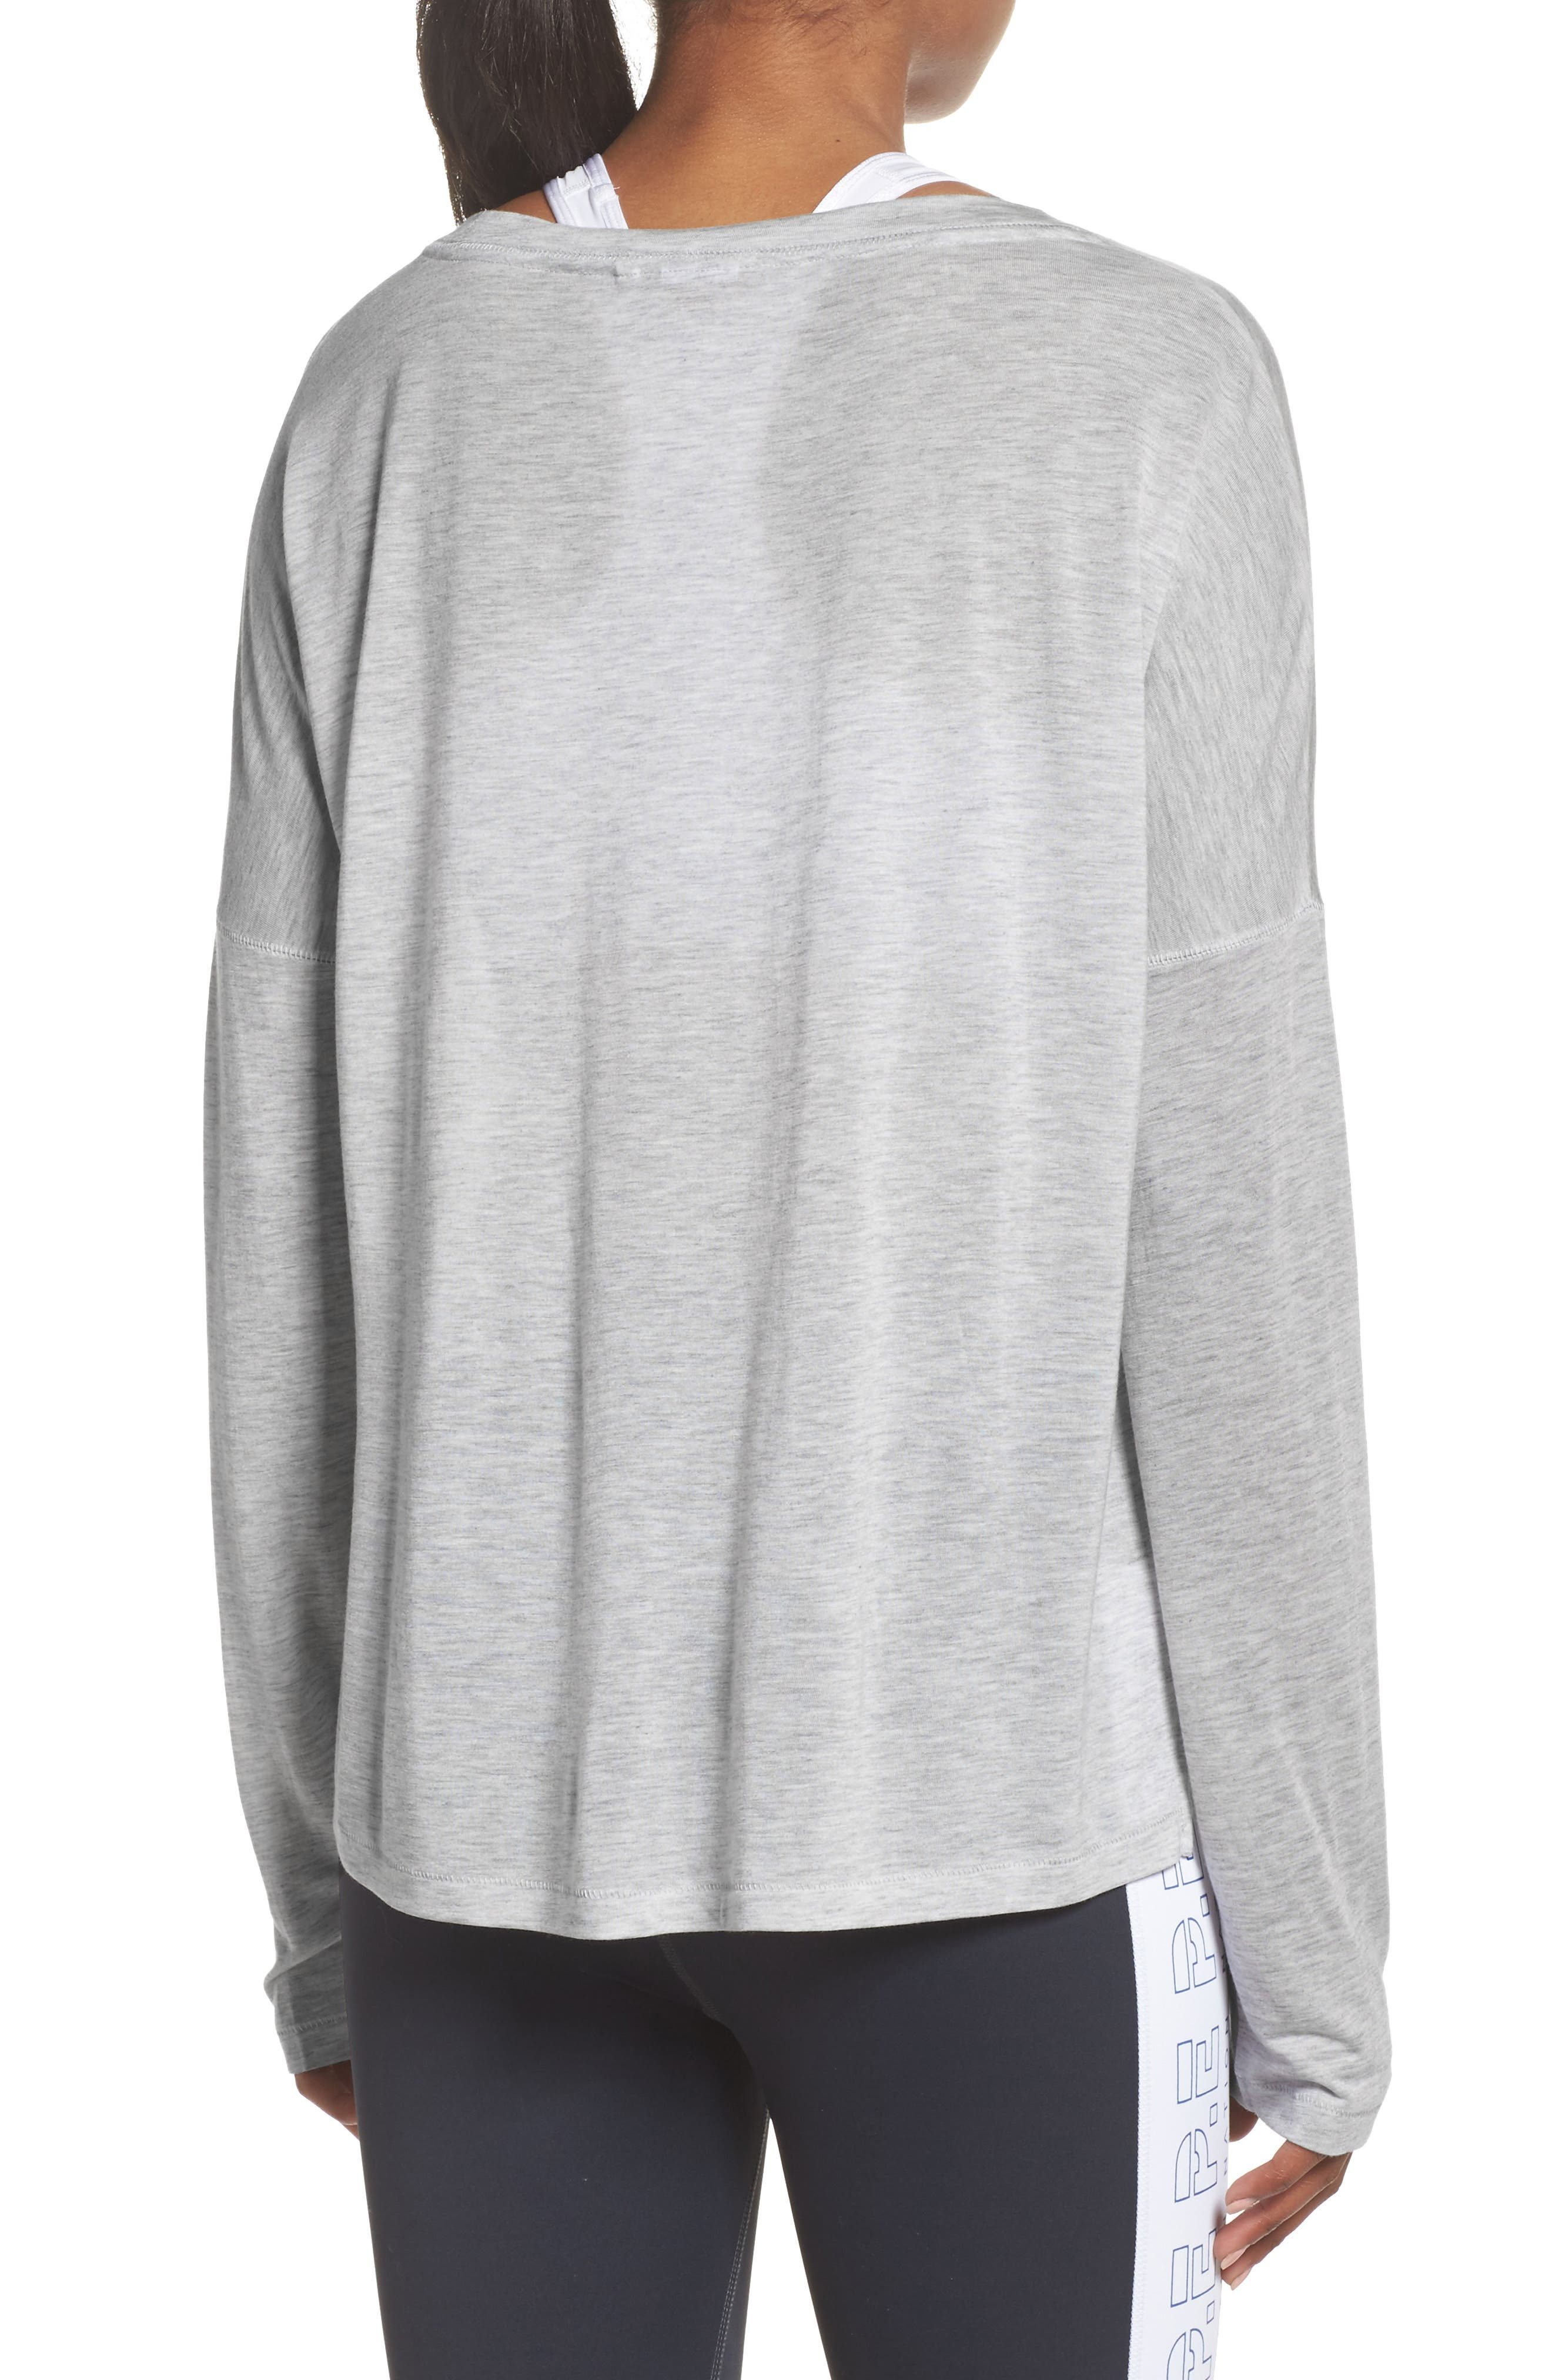 Cool Running Top,                             Alternate thumbnail 2, color,                             020